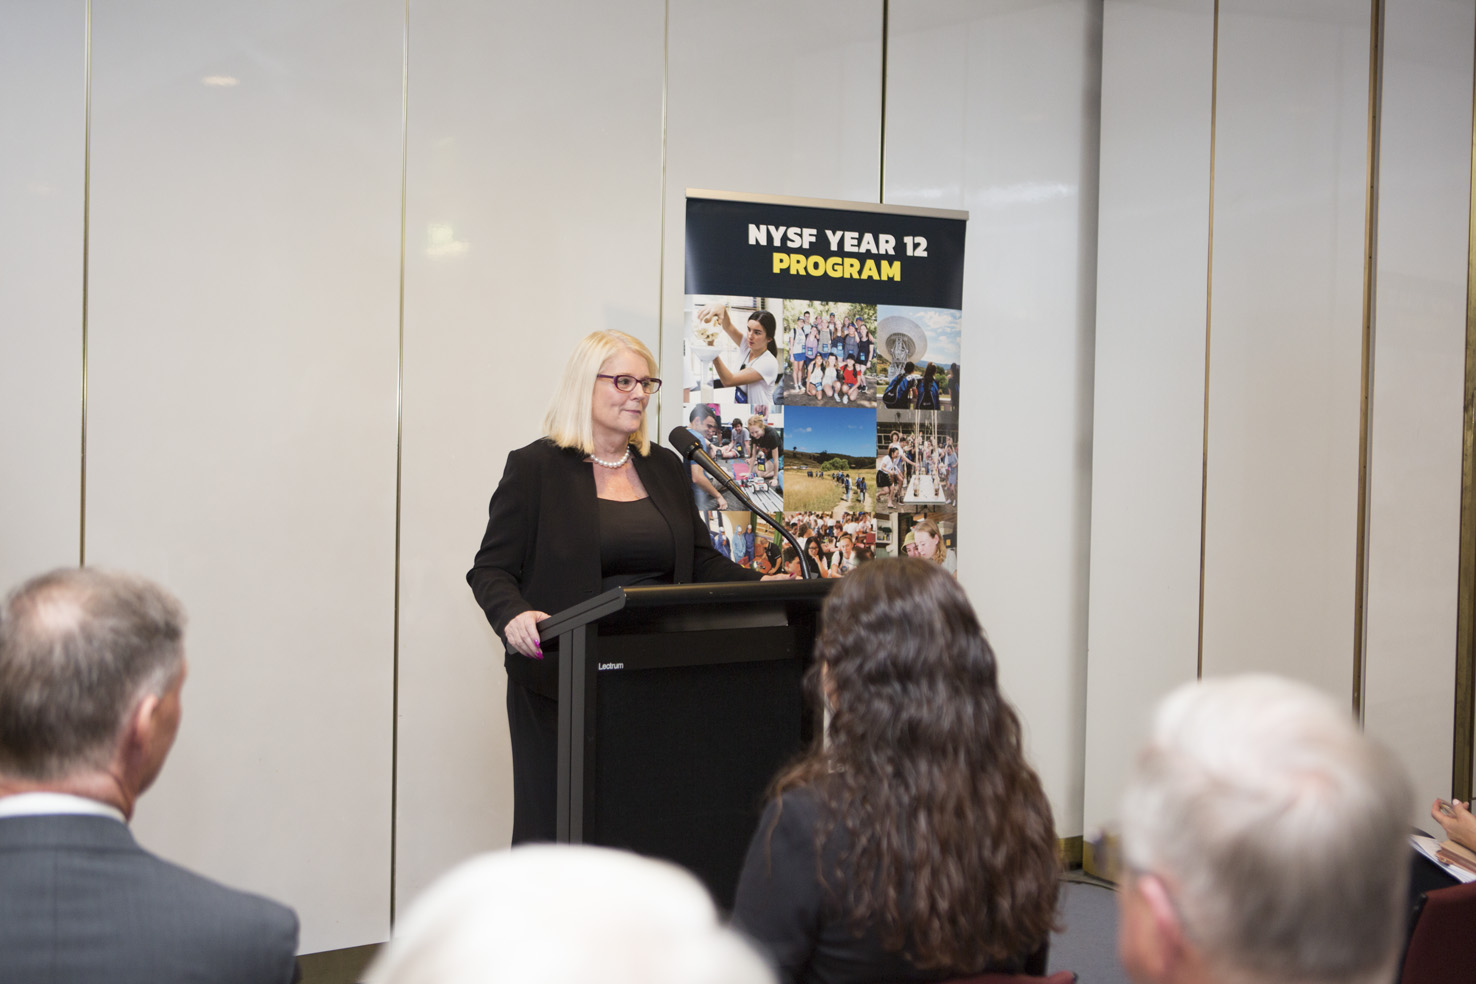 National Launch for the NYSF 2020 Year 12 Program - content image